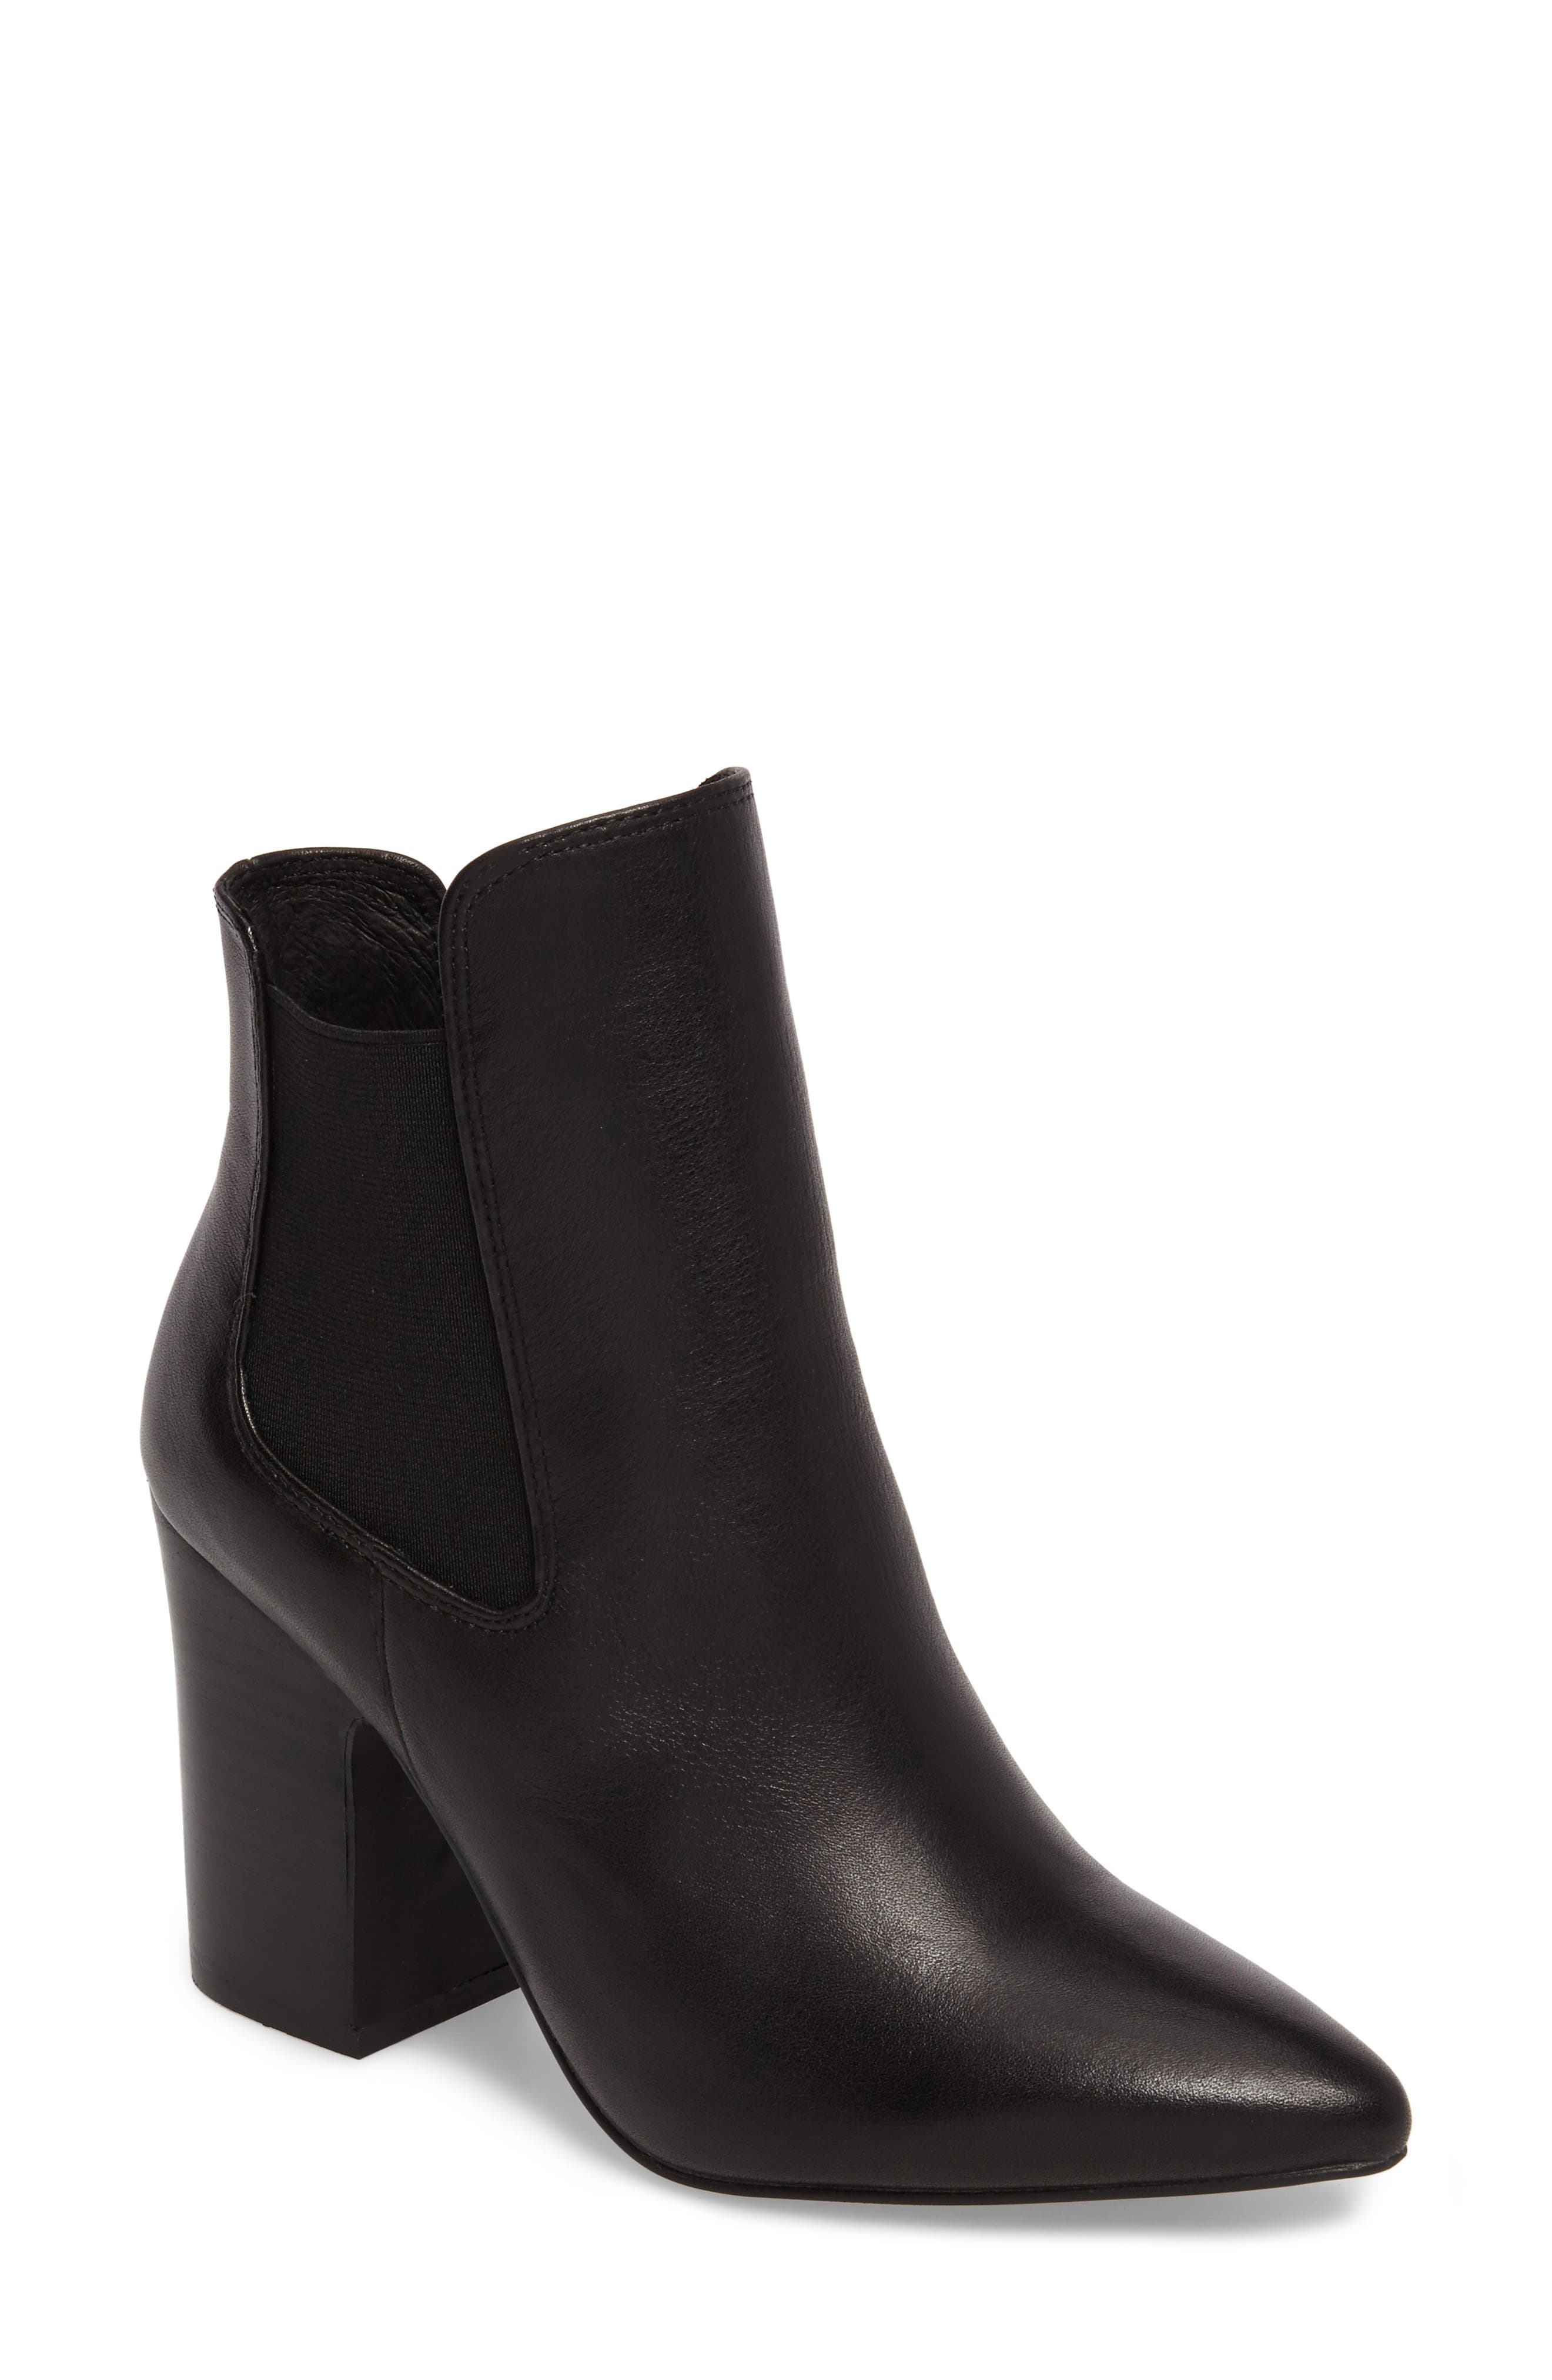 Starlight Bootie,                             Main thumbnail 1, color,                             BLACK LEATHER